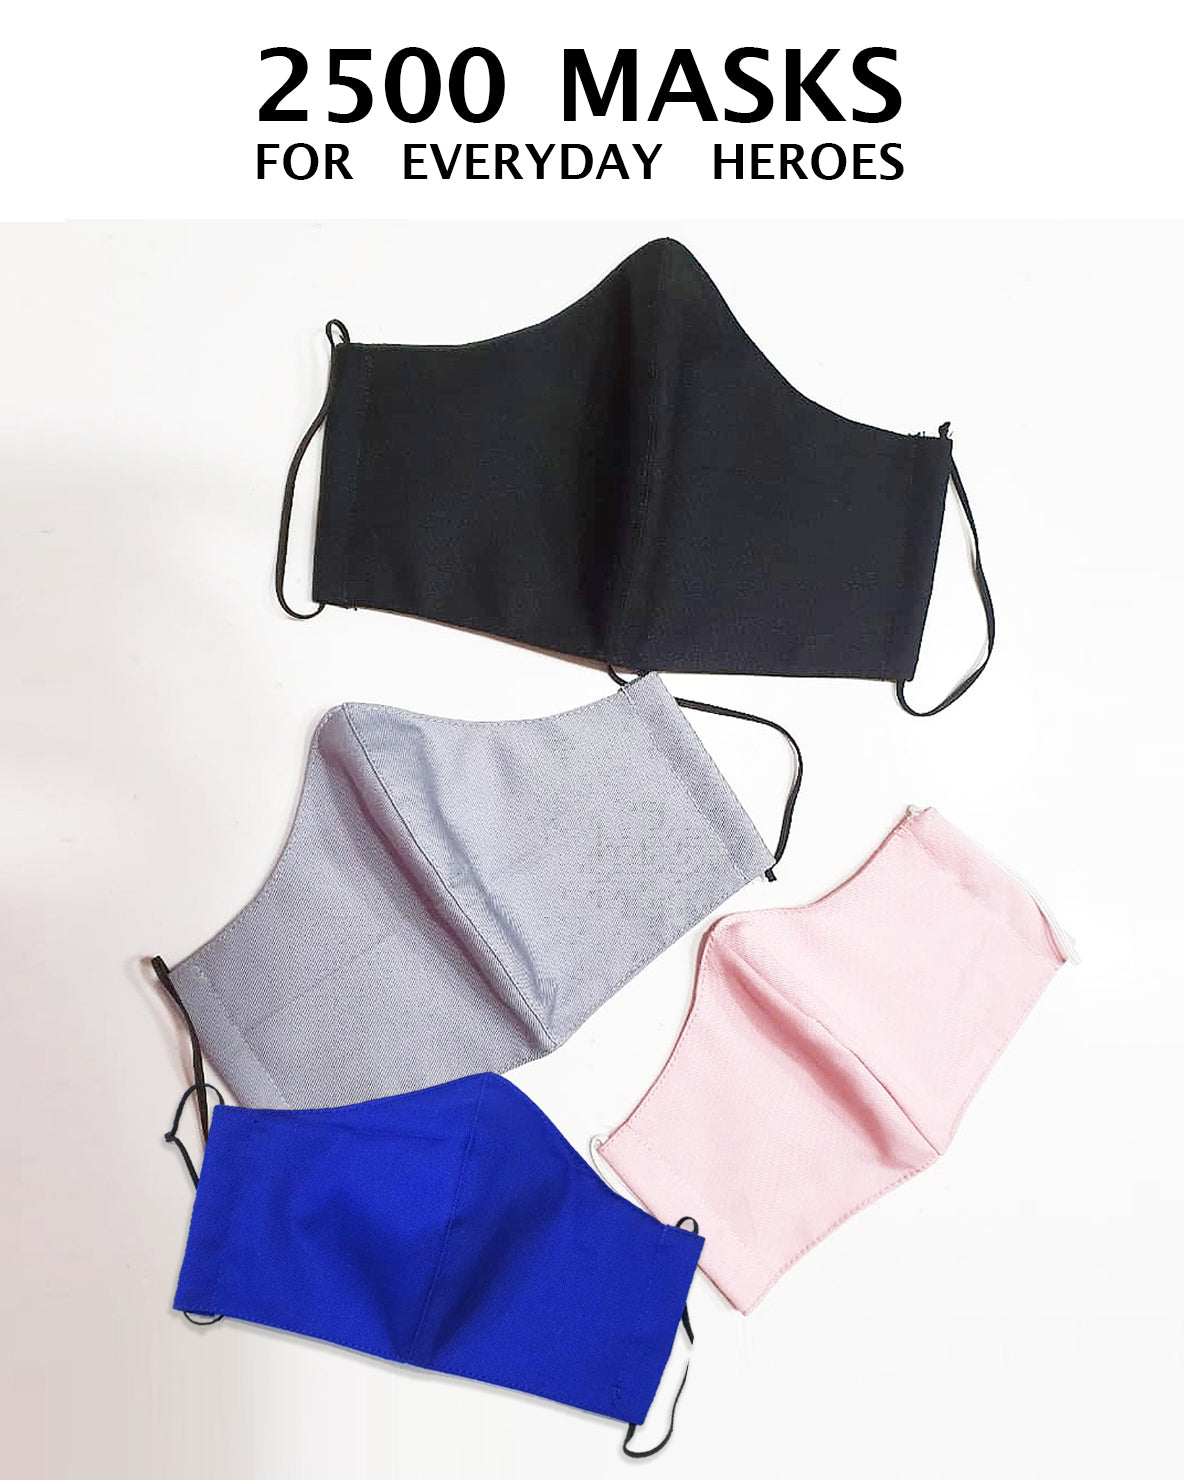 EVERYDAY HEROES Reusable Mask